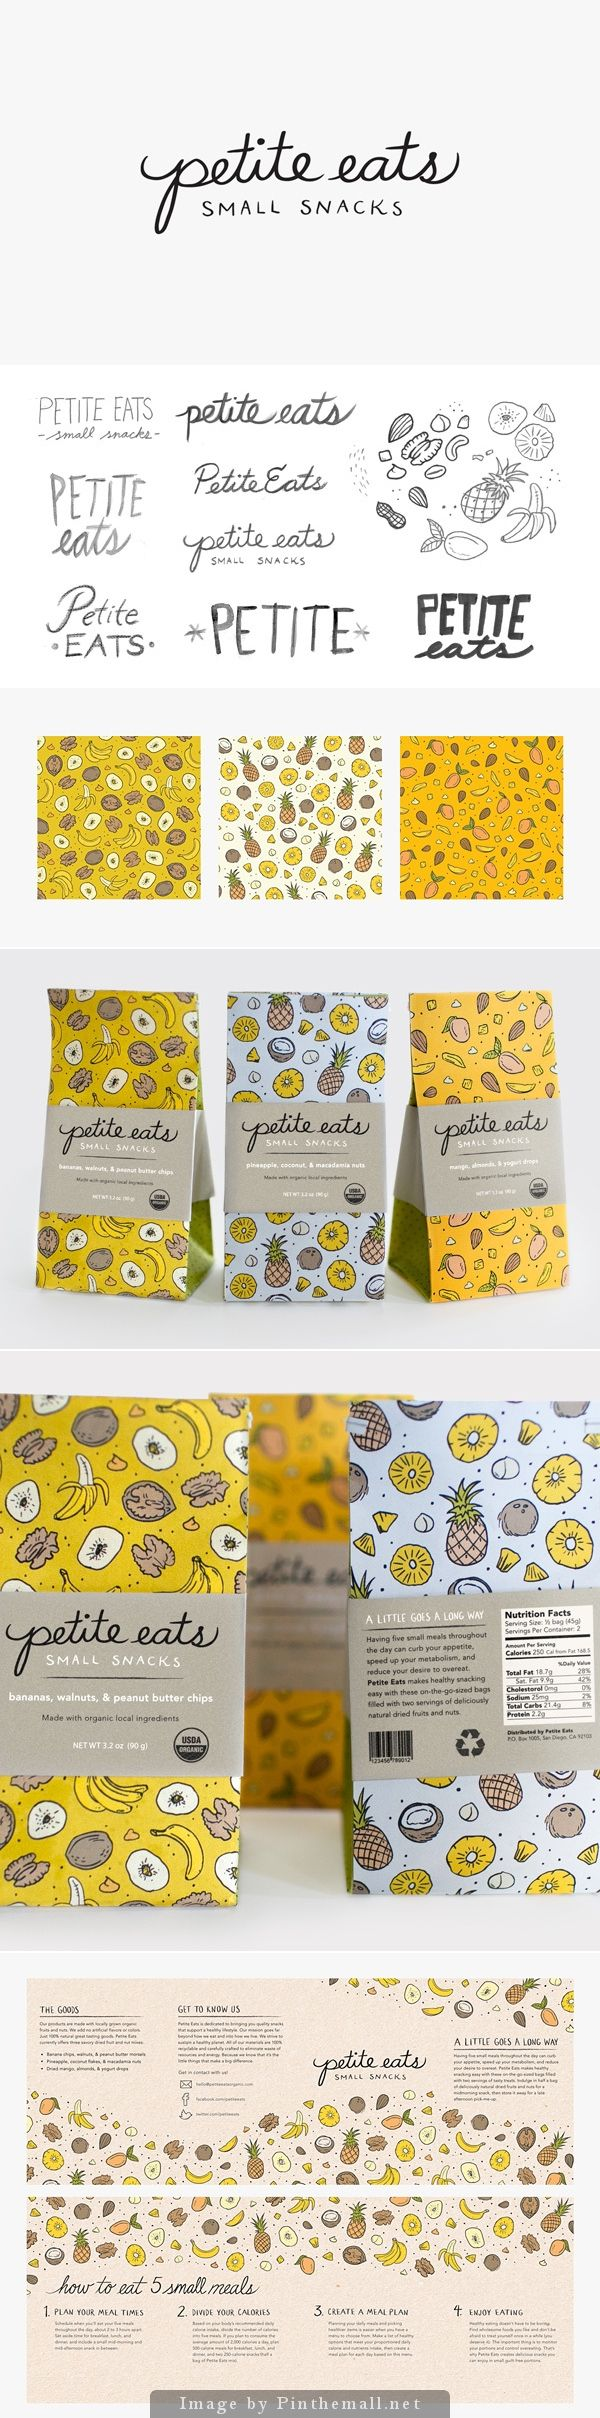 Petit Eats Healthy Snack Foods Packaging Design